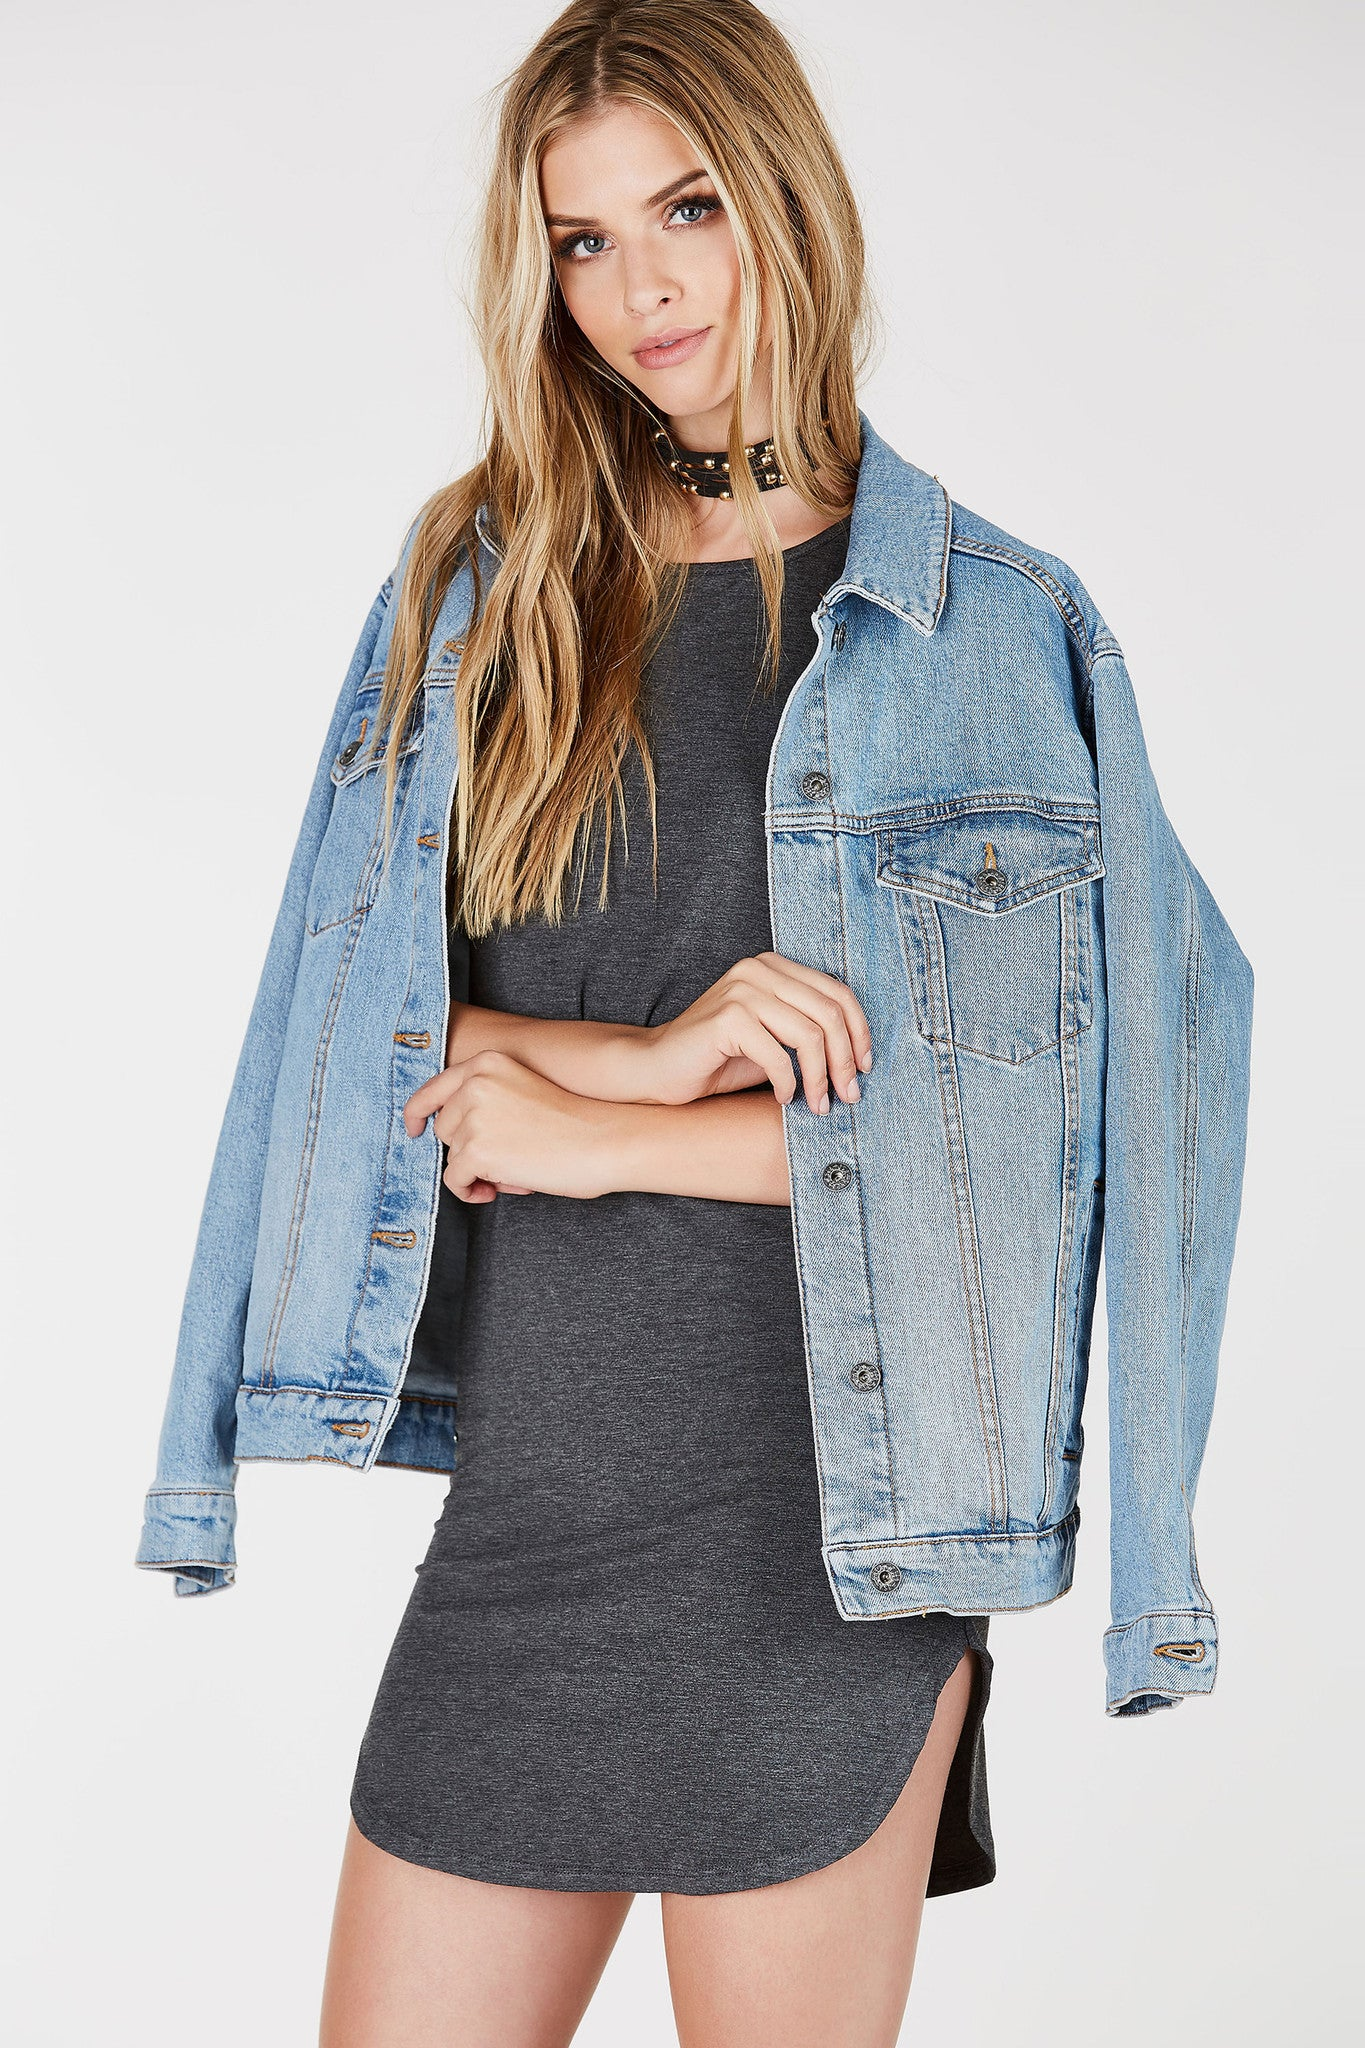 A basic mini dress, a staple piece for your wardrobe. Soft comfortable material with clean cut short sleeves. Rounded neckline to match the hem. Style with sneakers and a jean jacket for a casual street-style outfit.